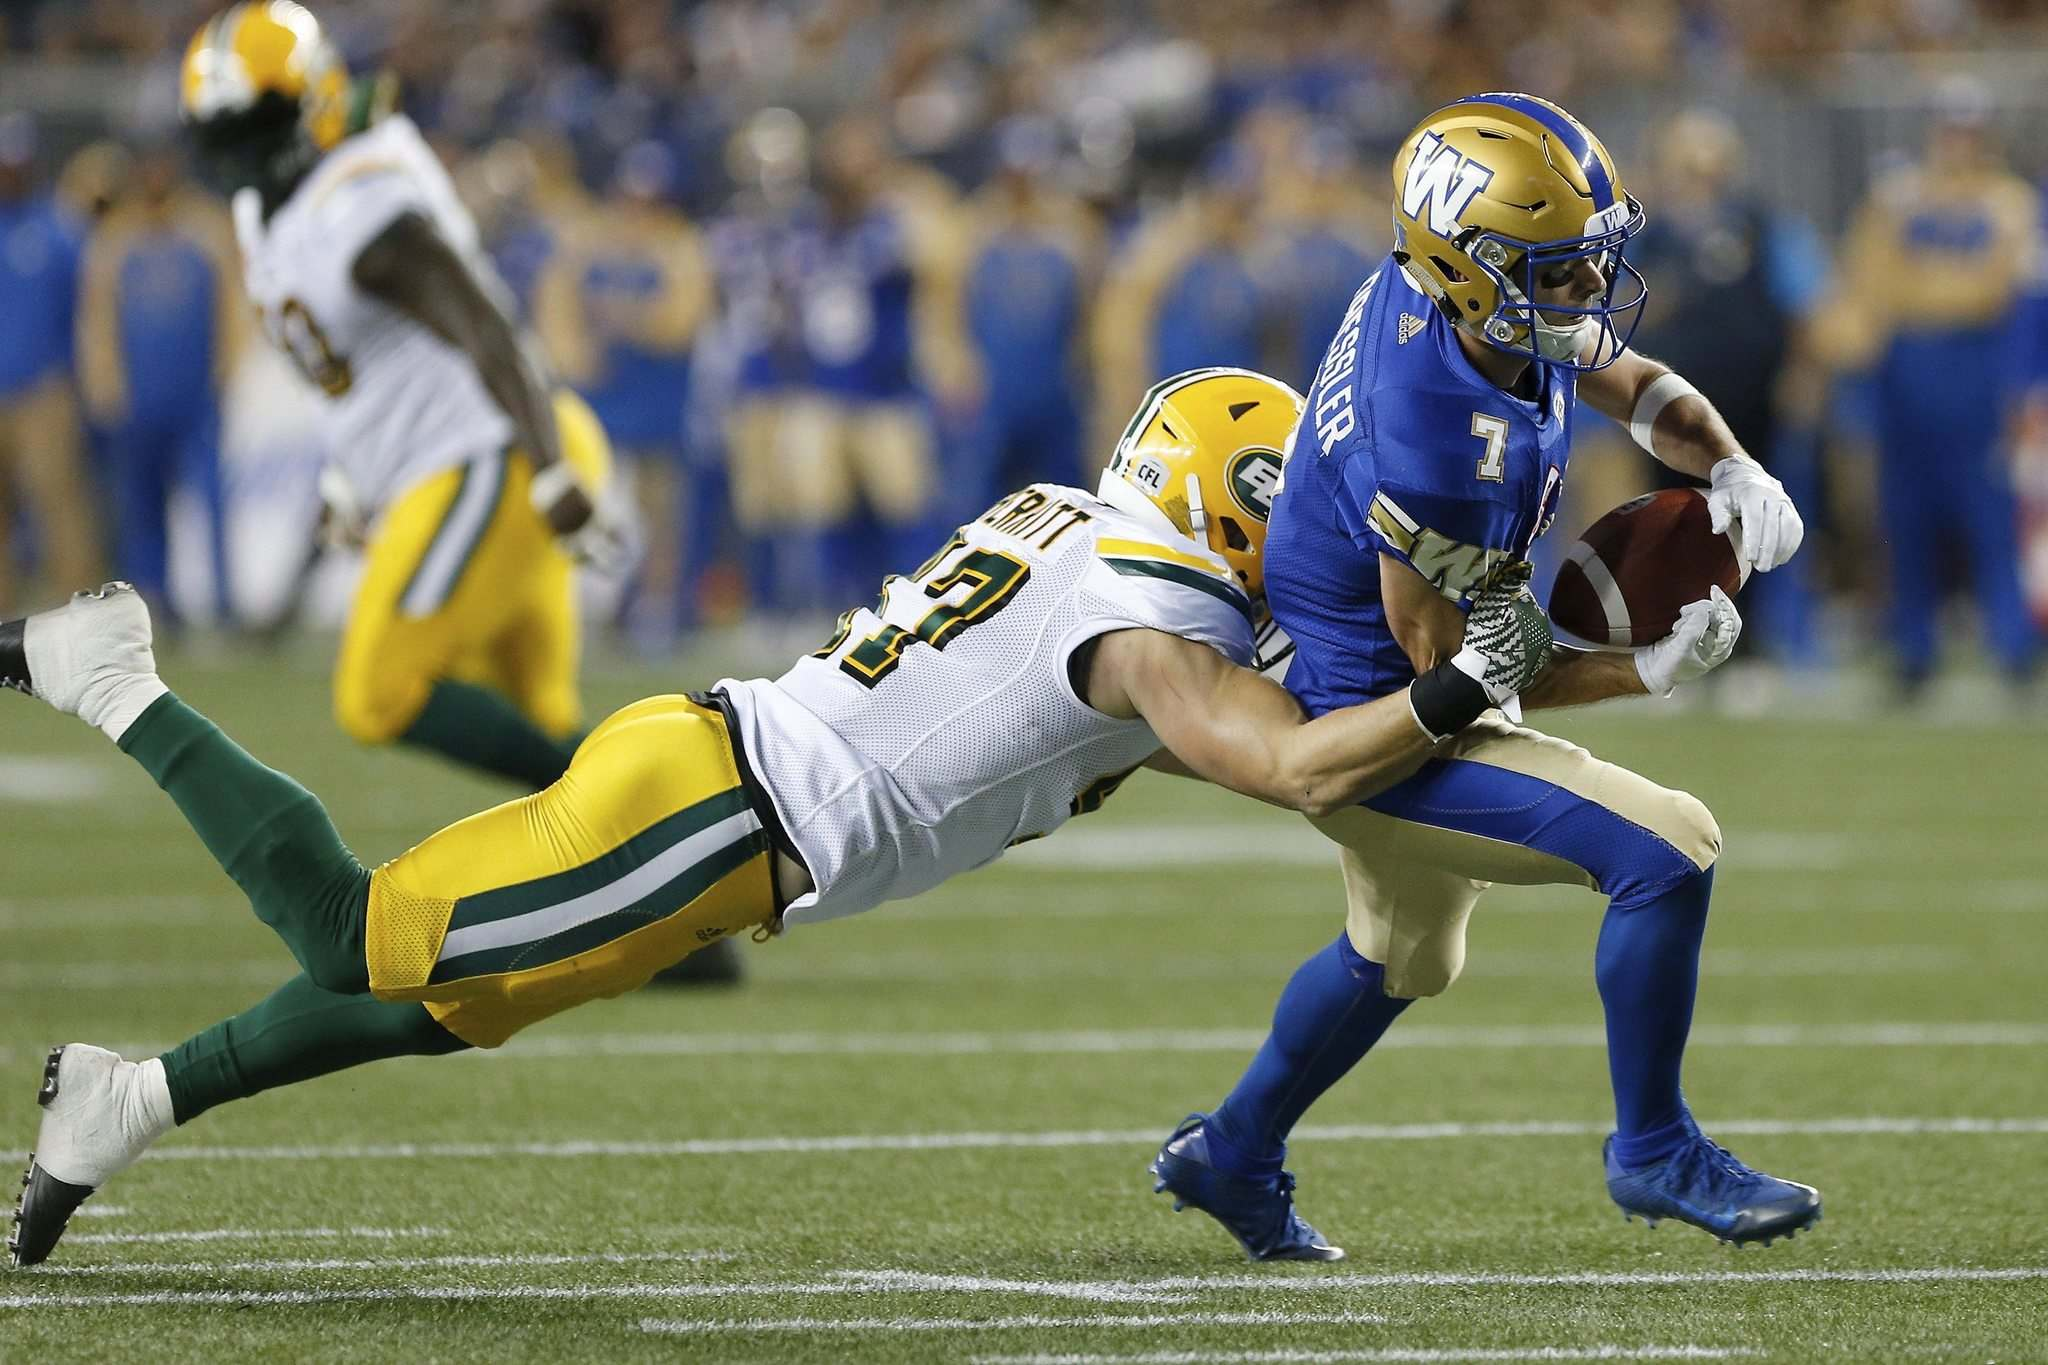 John Woods / The Canadian Press</p><p>Edmonton Eskimos' JC Sherritt strips the ball from the hands of Winnipeg Blue Bombers' Weston Dressler during the first half of CFL action in Winnipeg Friday.</p>